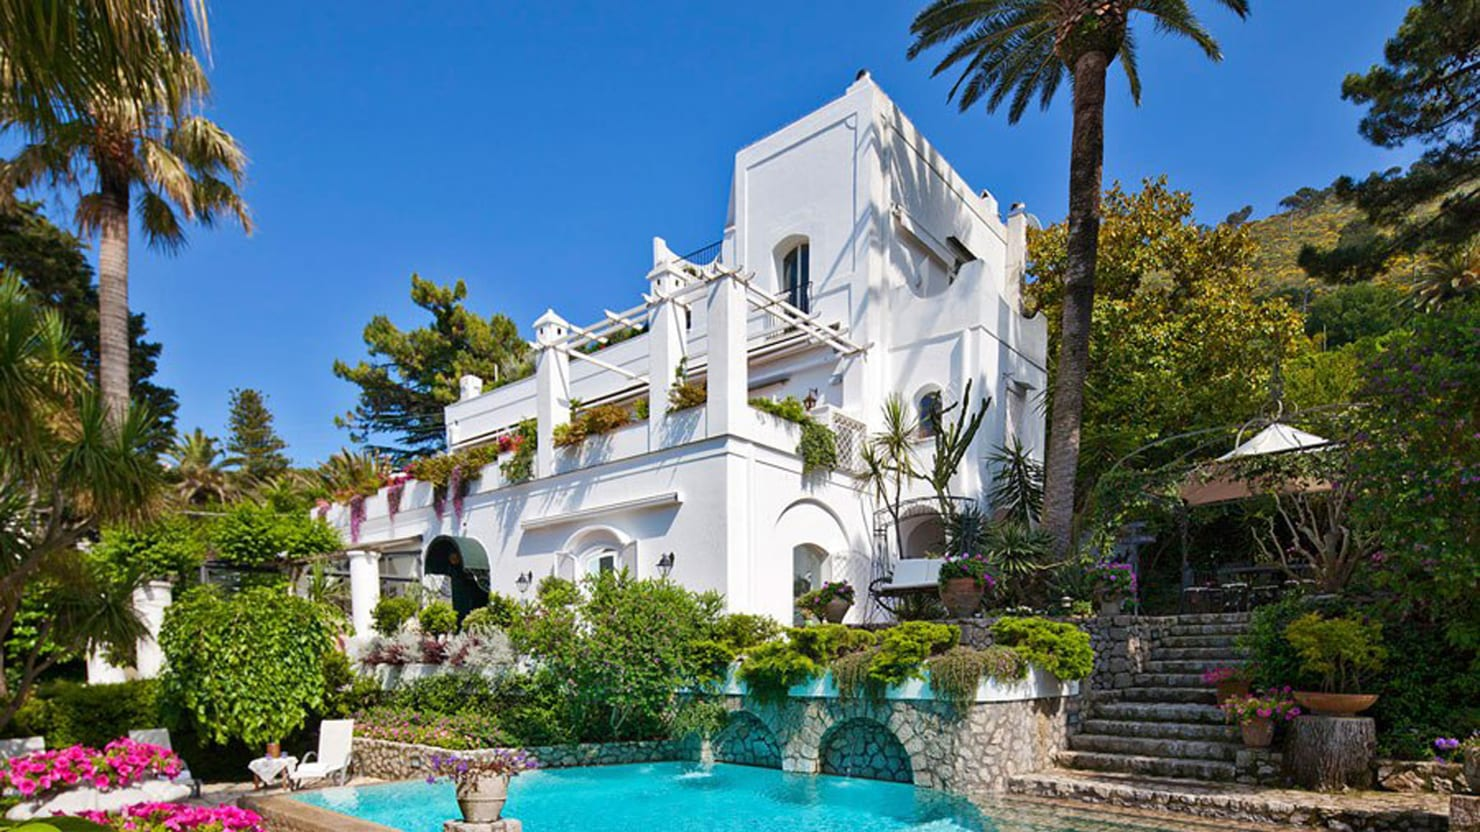 Rent This Mediterranean Villa (Photos)